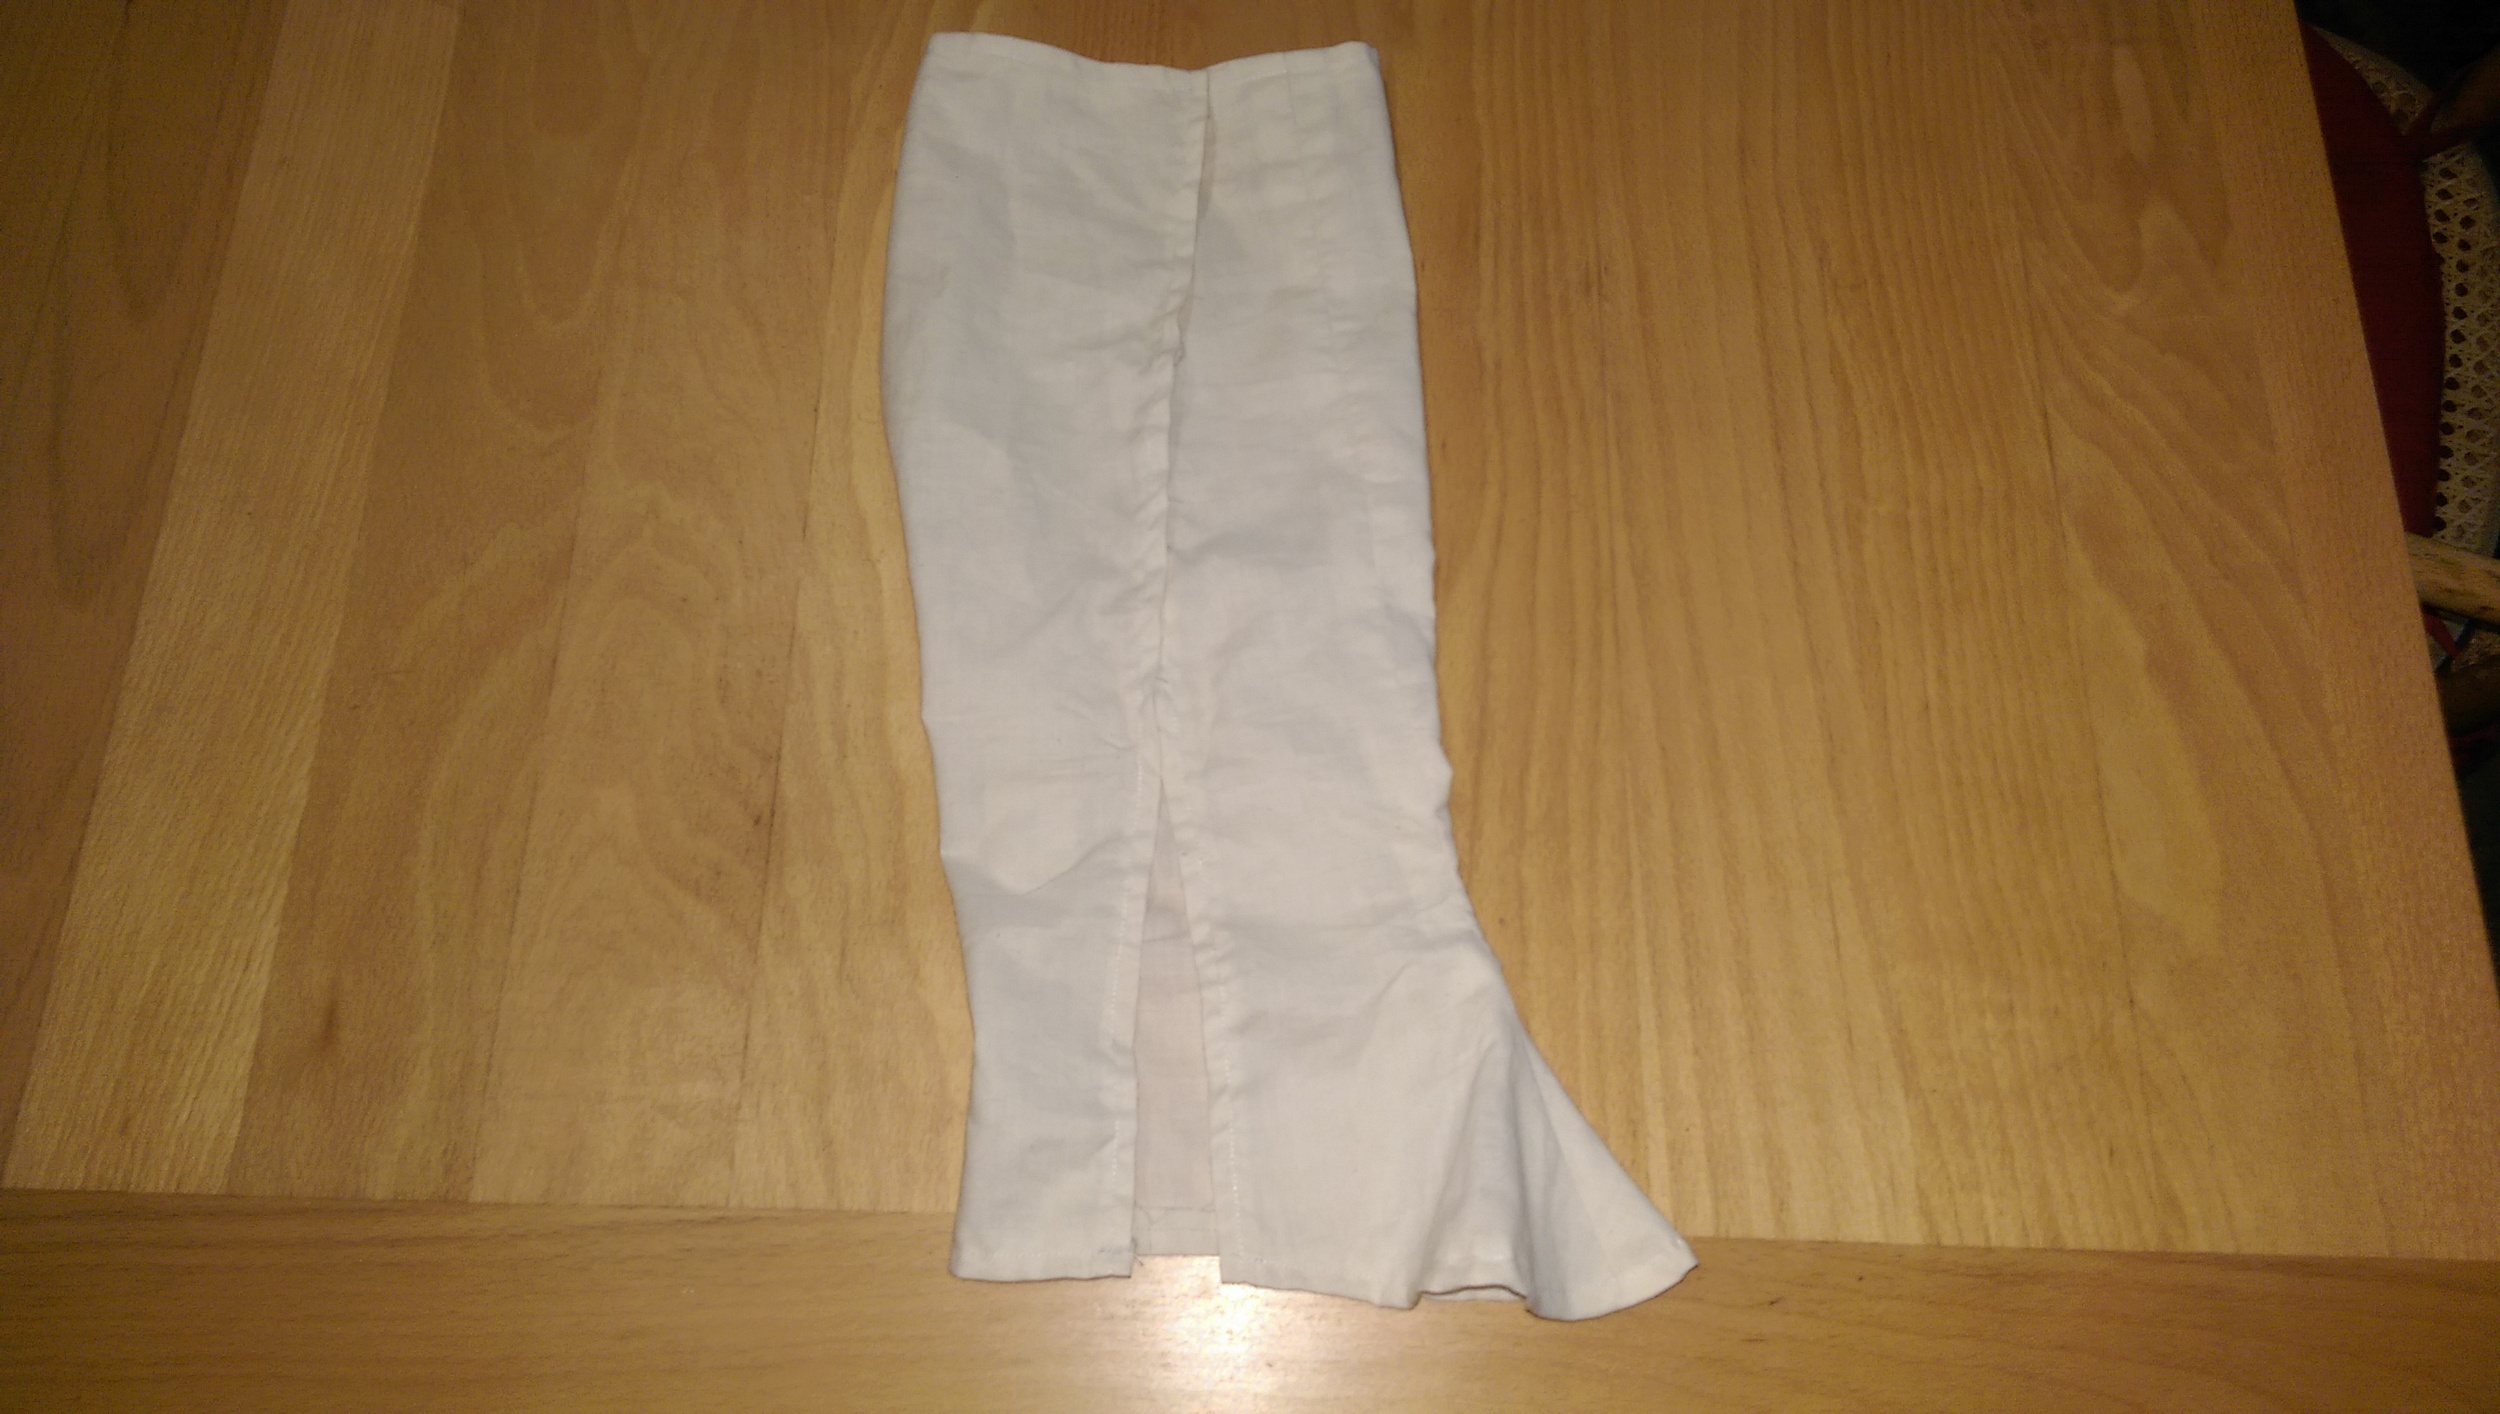 Muslin prototype made from the first pattern